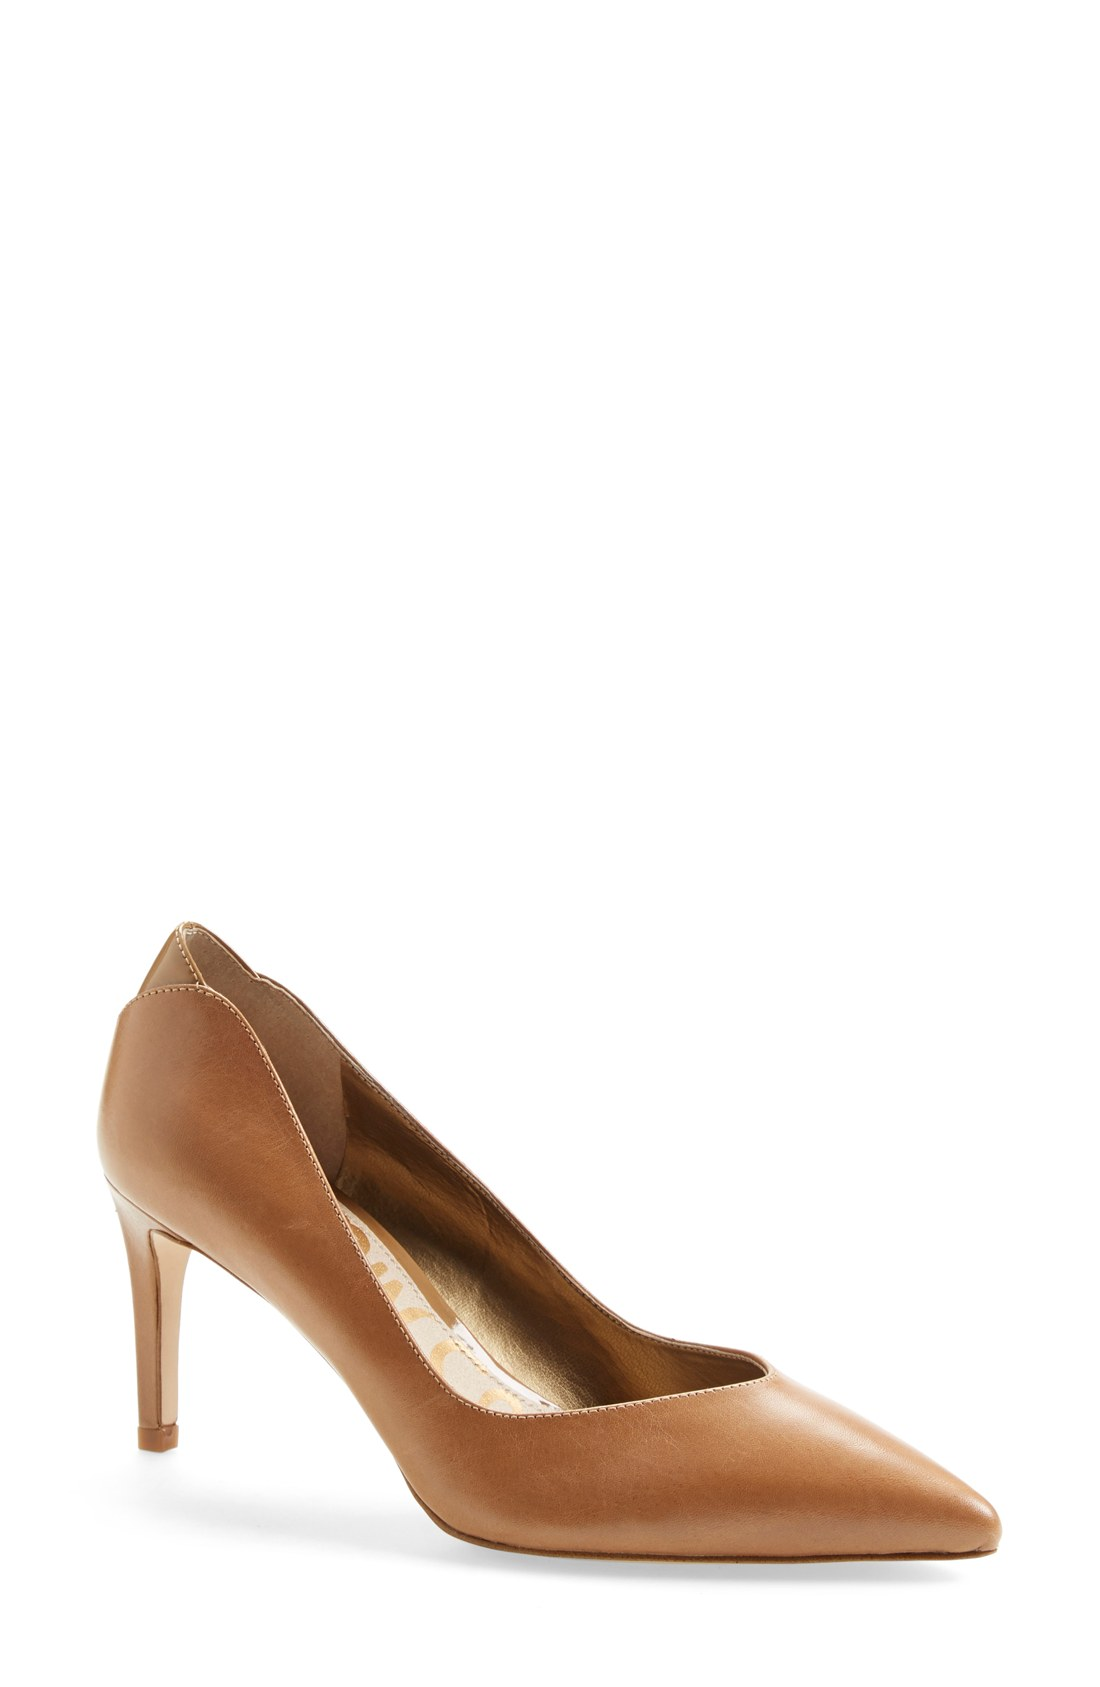 Our RALPH LAUREN Shoes women Catalogue is available on Glamood. Buy well-known brands at outlet prices.